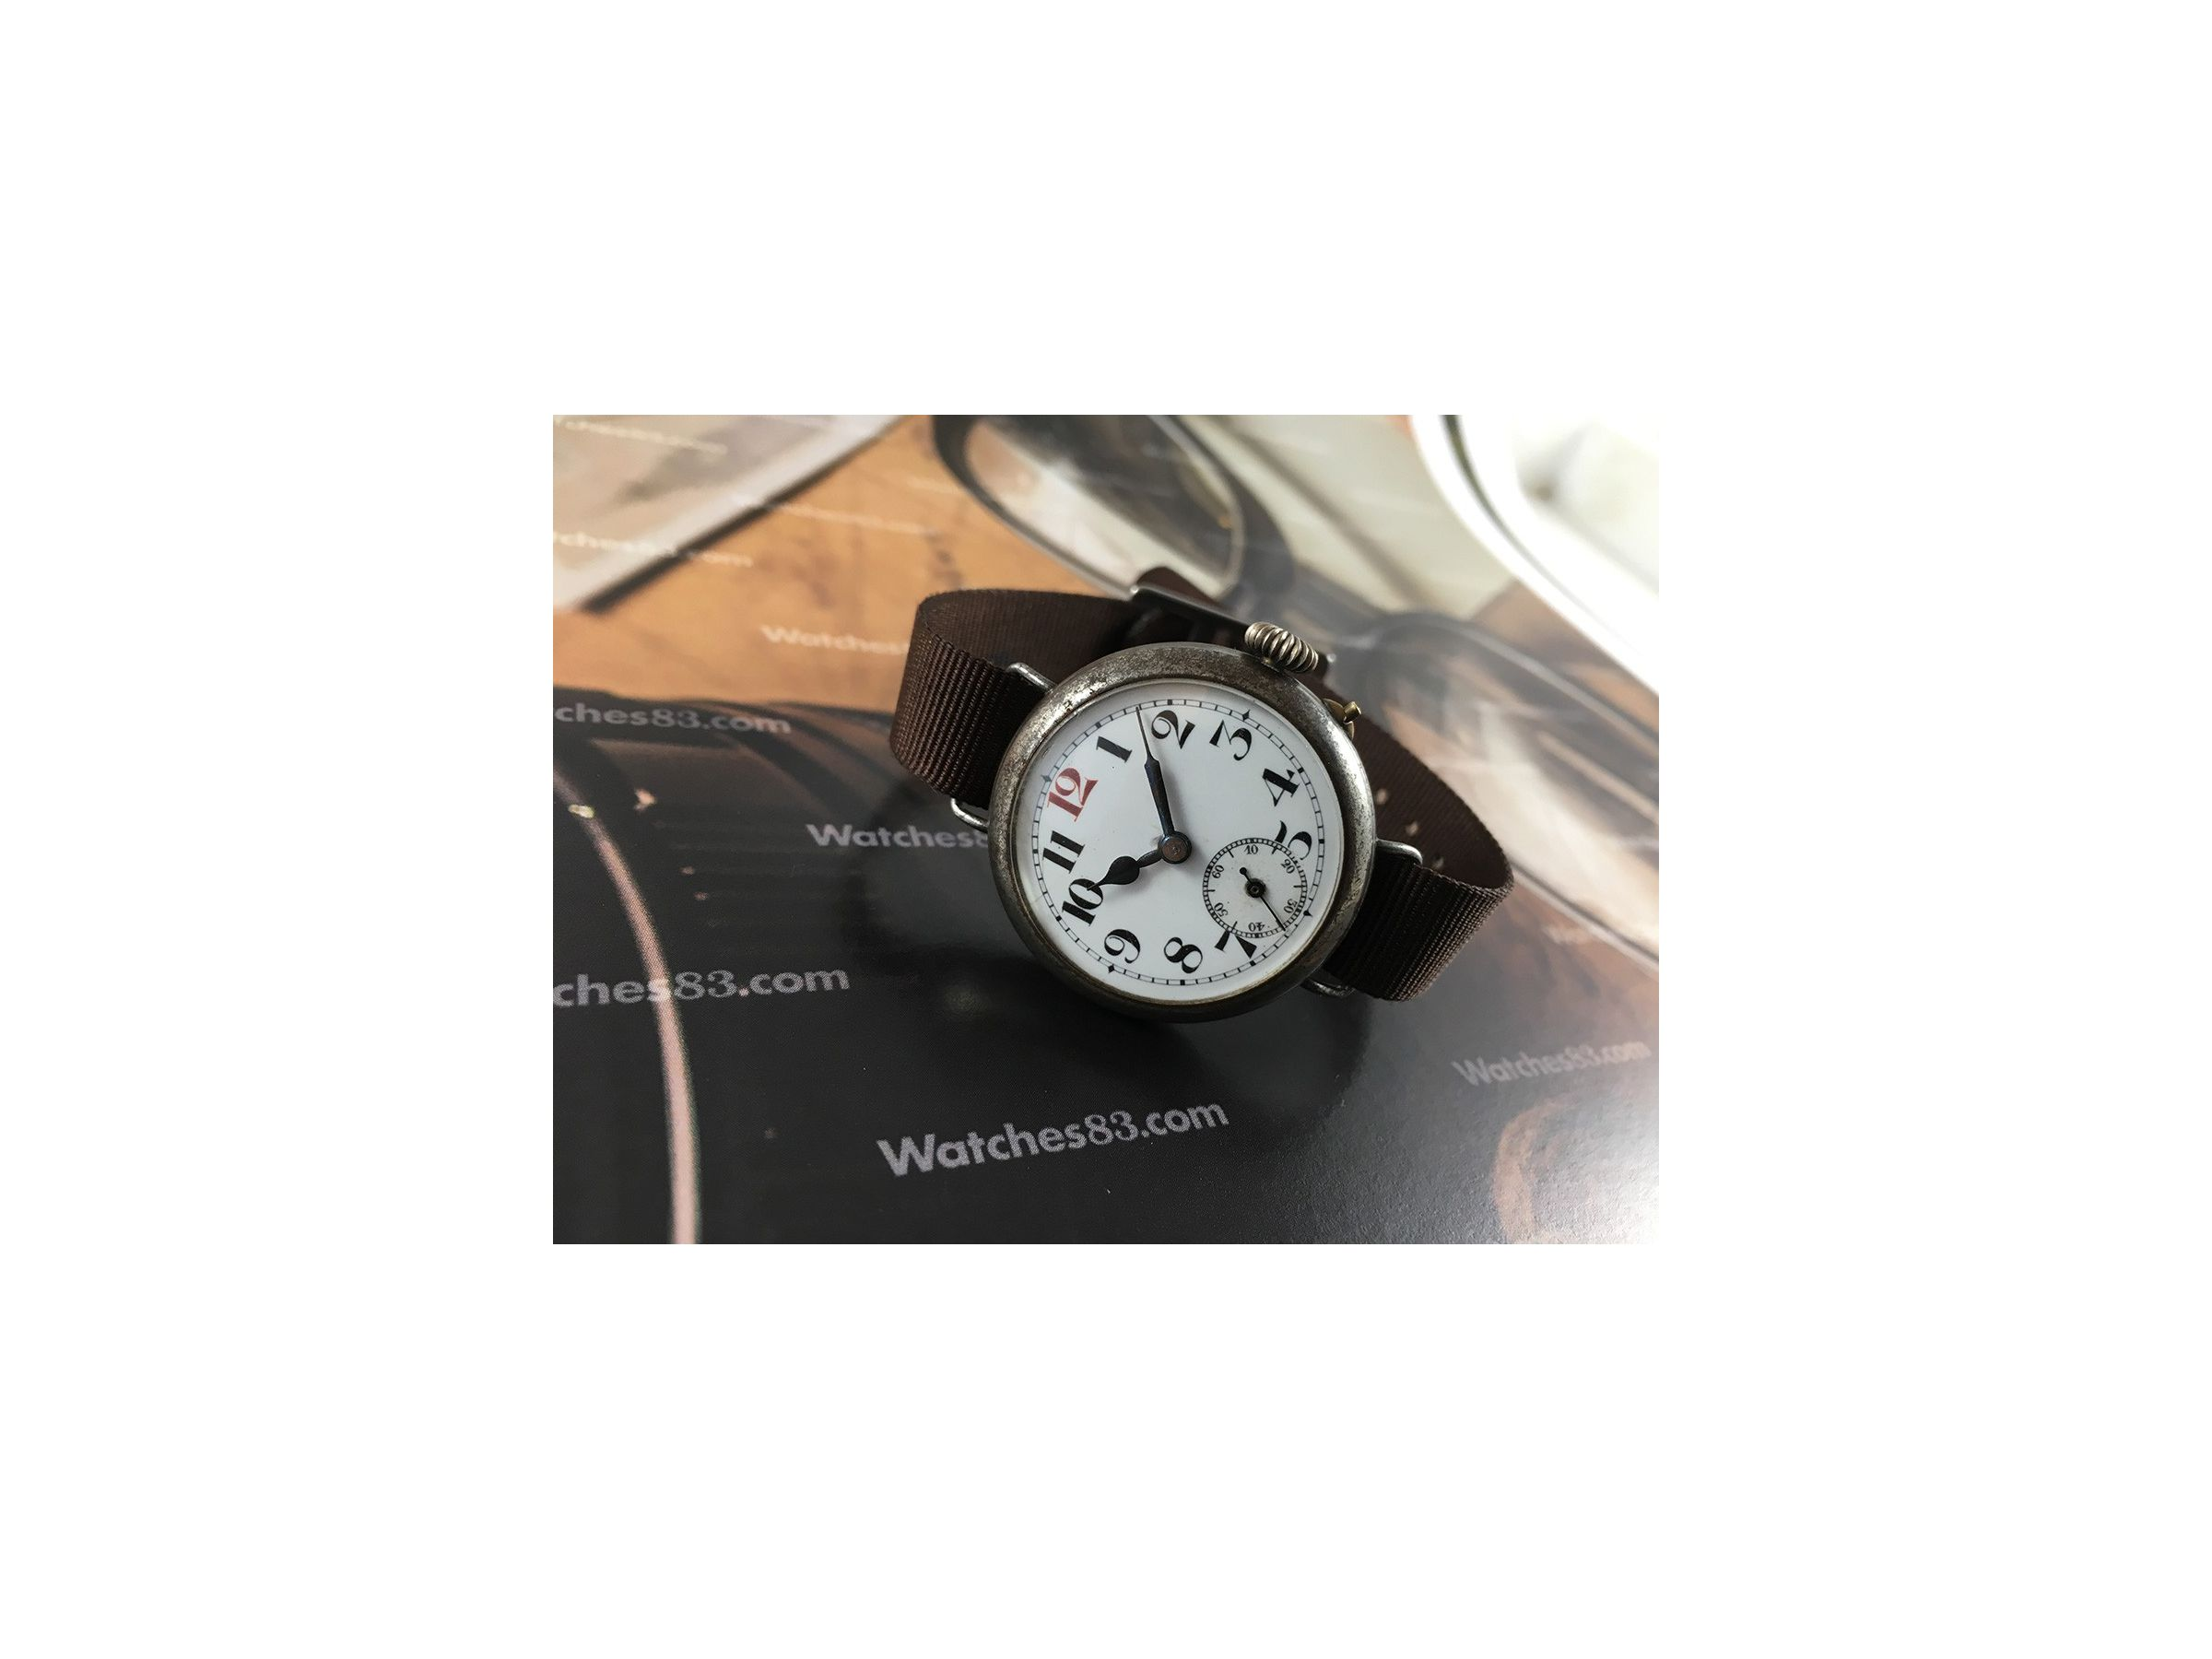 watches modern a vintage in mens khaki the its watchshop wind watch oozes mechanical lot com officer befitting of styling military hamilton slightly hamiltons than gents at smaller history manual